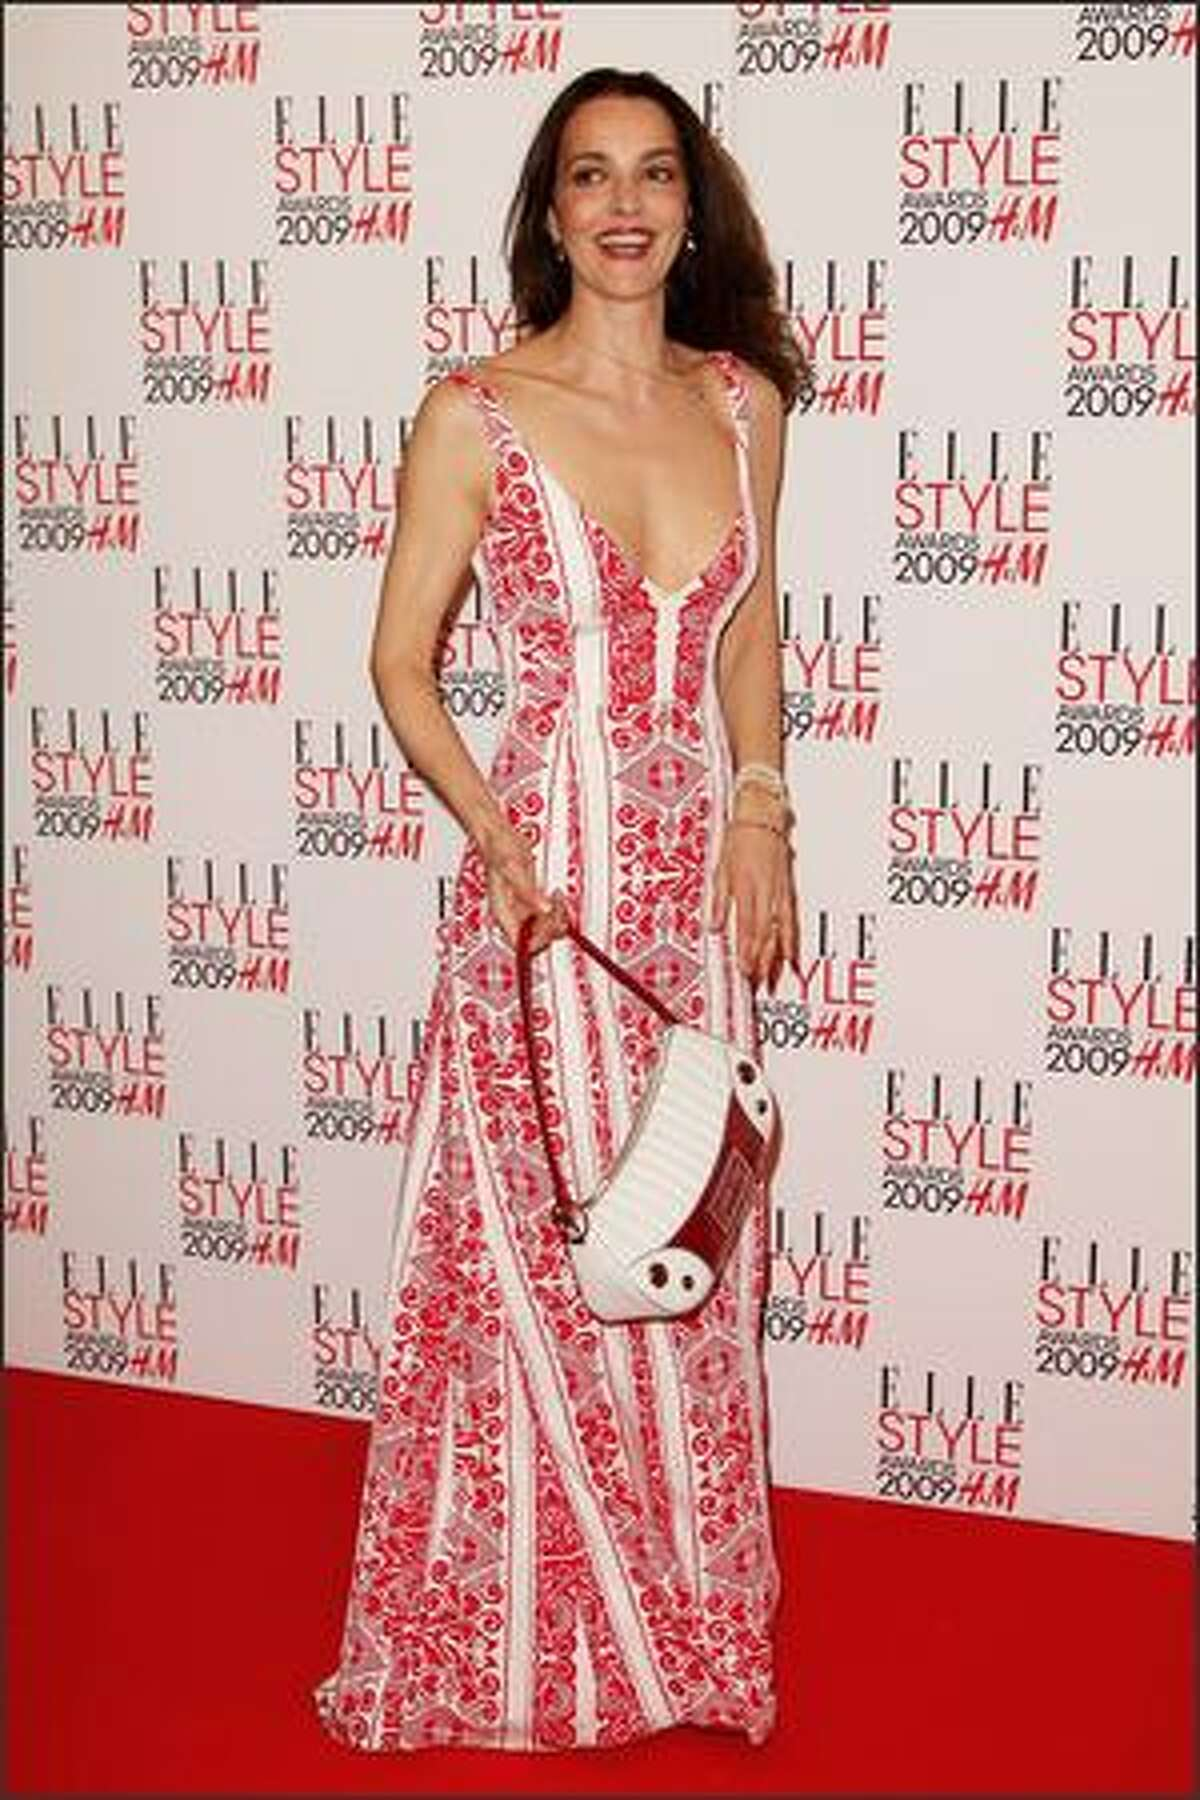 Catherine Bailey attends The Elle Style Awards 2009 held at Big Sky Studios, Caledonian Road in London, England.